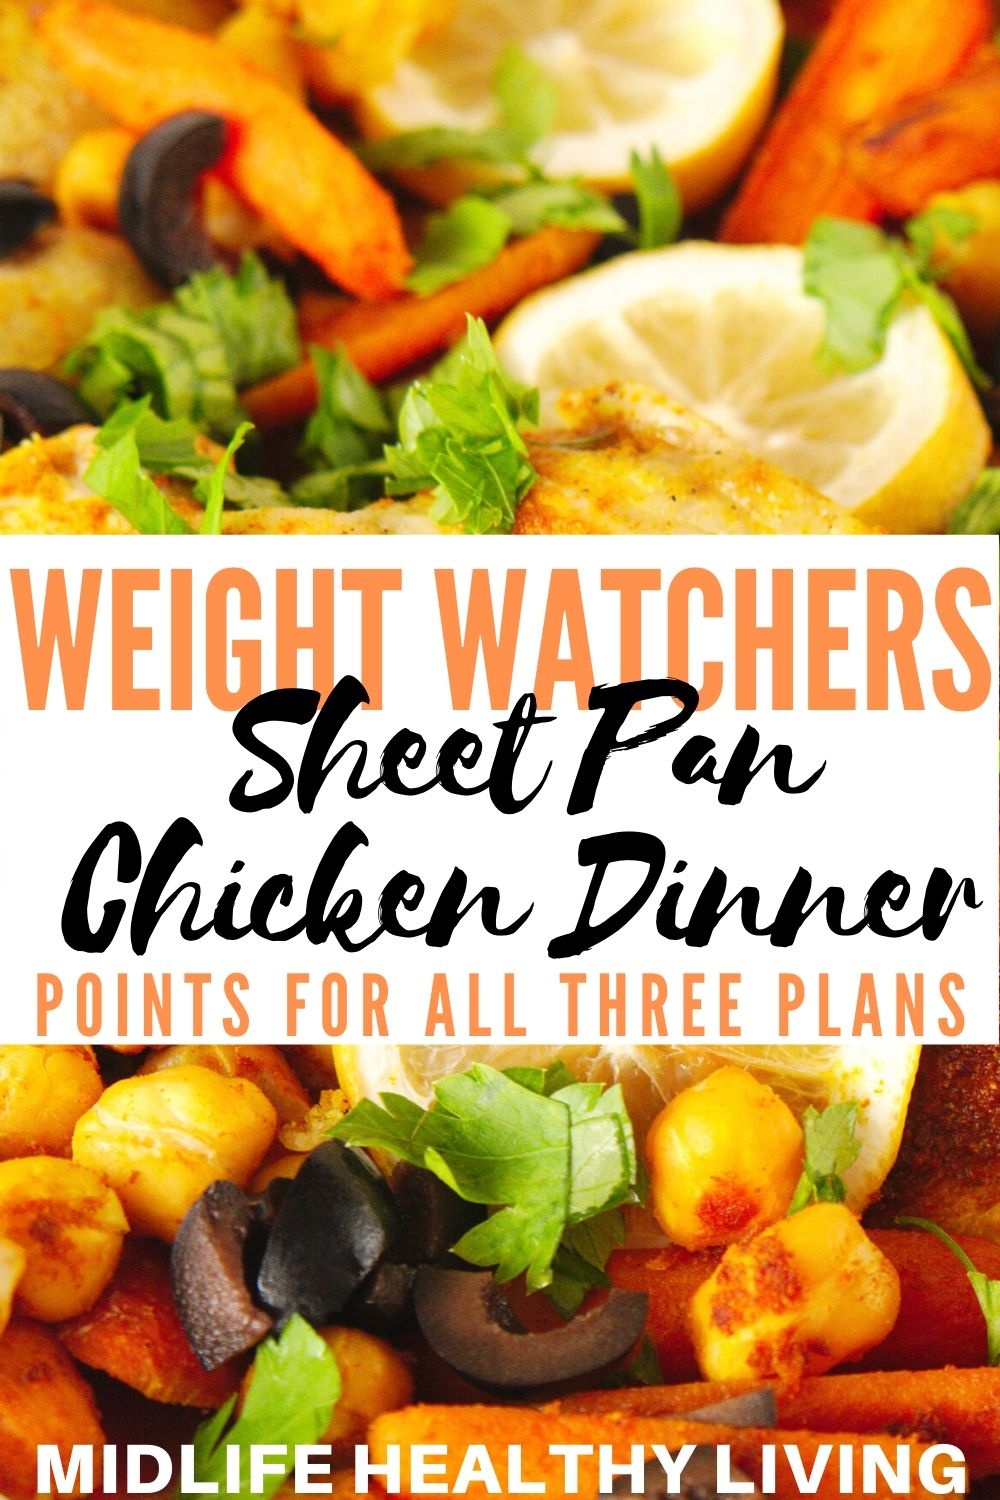 A pin showing the finished recipe with the title in the middle showing the weight watchers sheet pan chicken dinner.